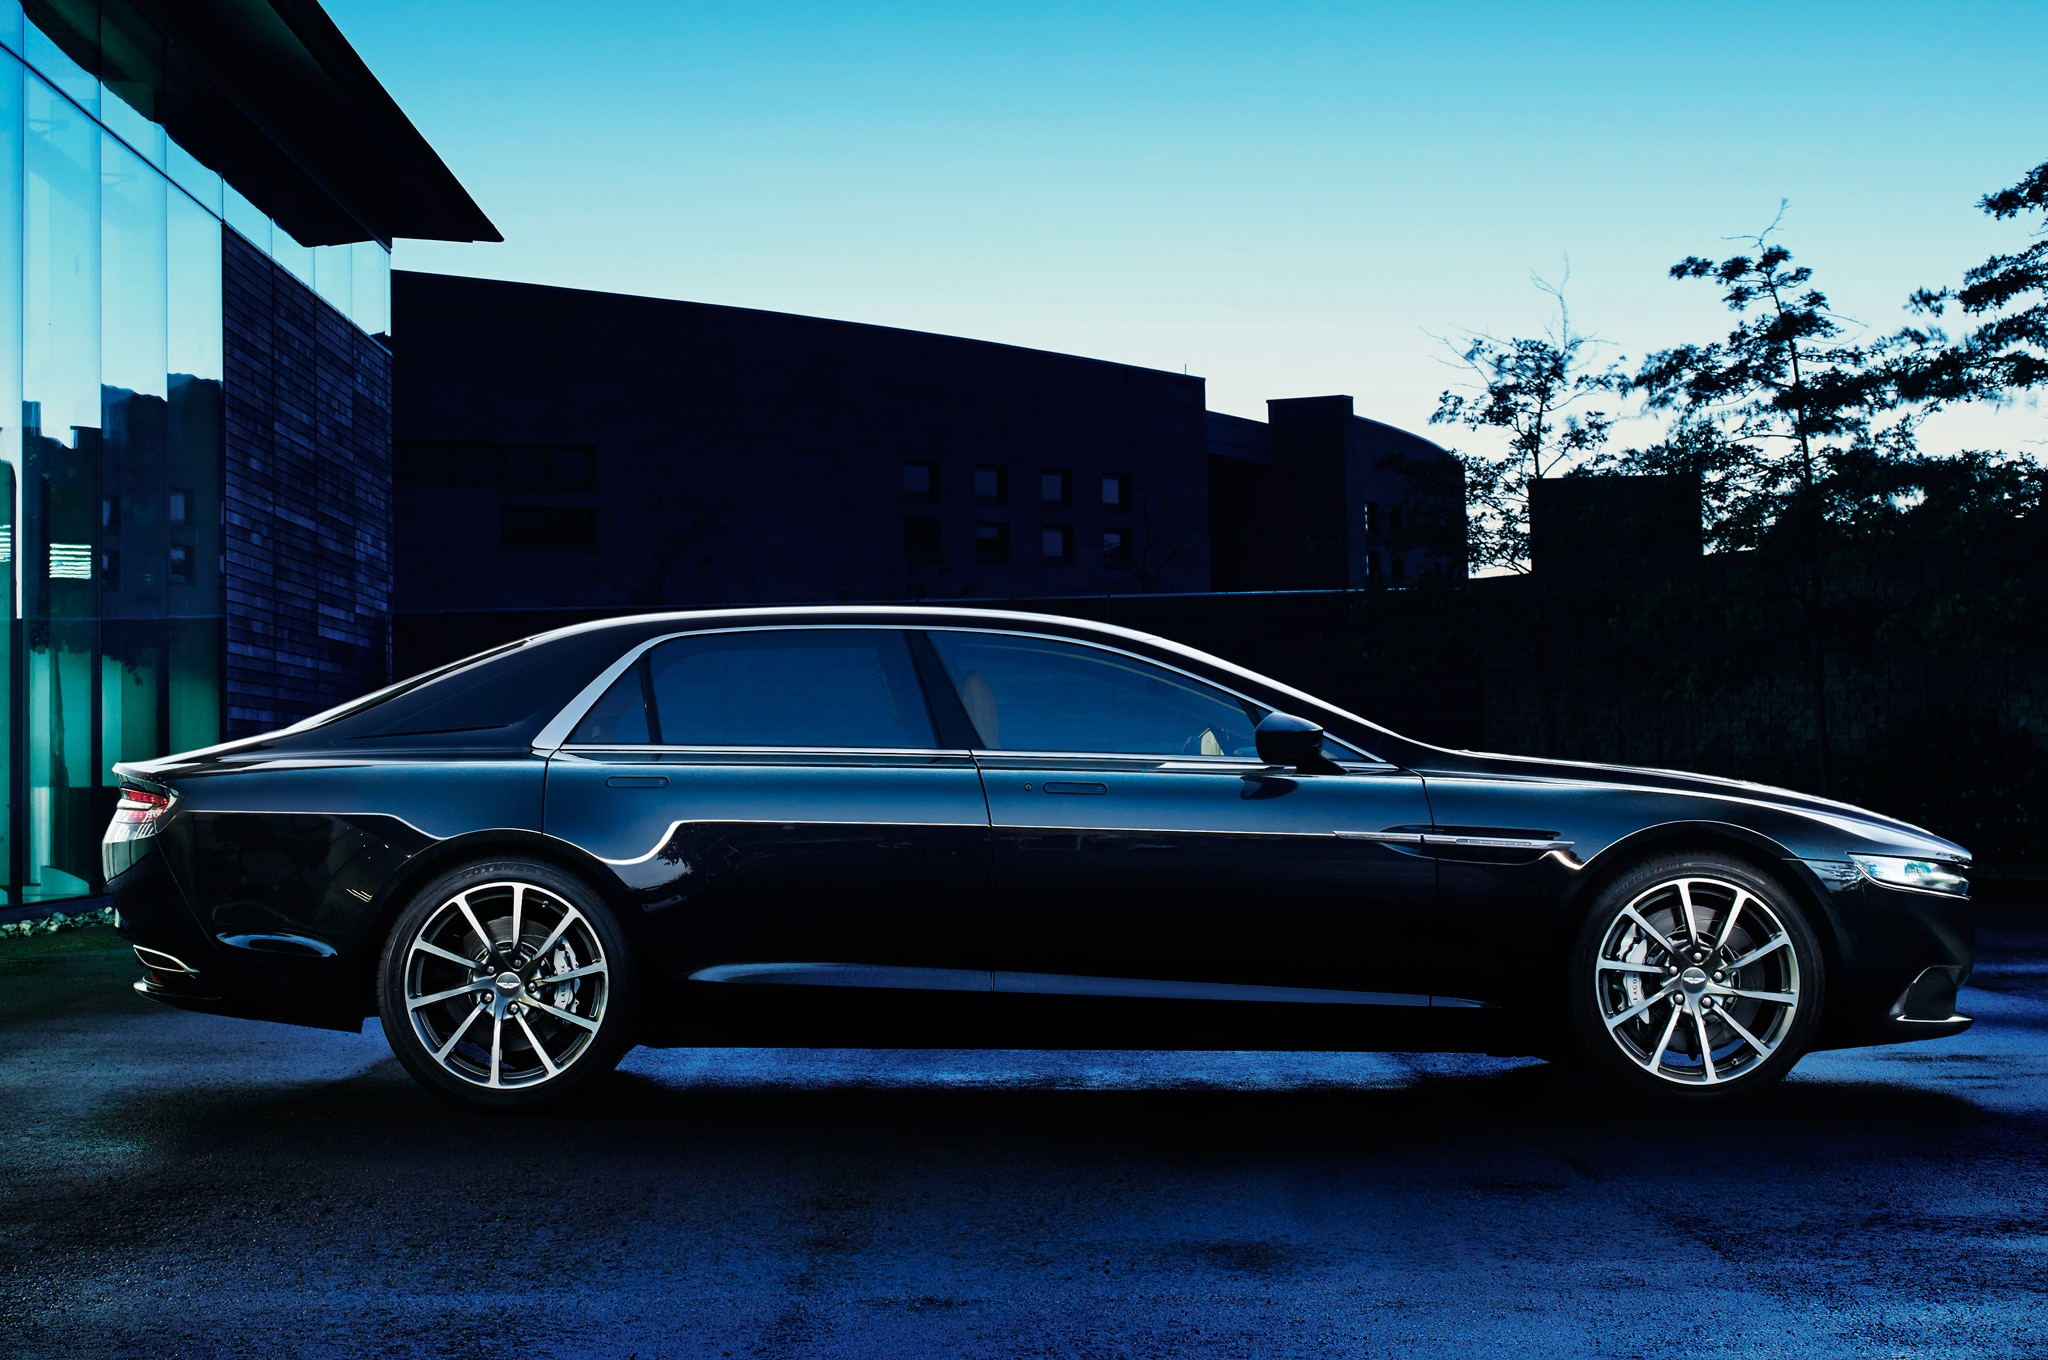 Aston Martin Lagonda Production Model Shown - Aston martin lagonda price